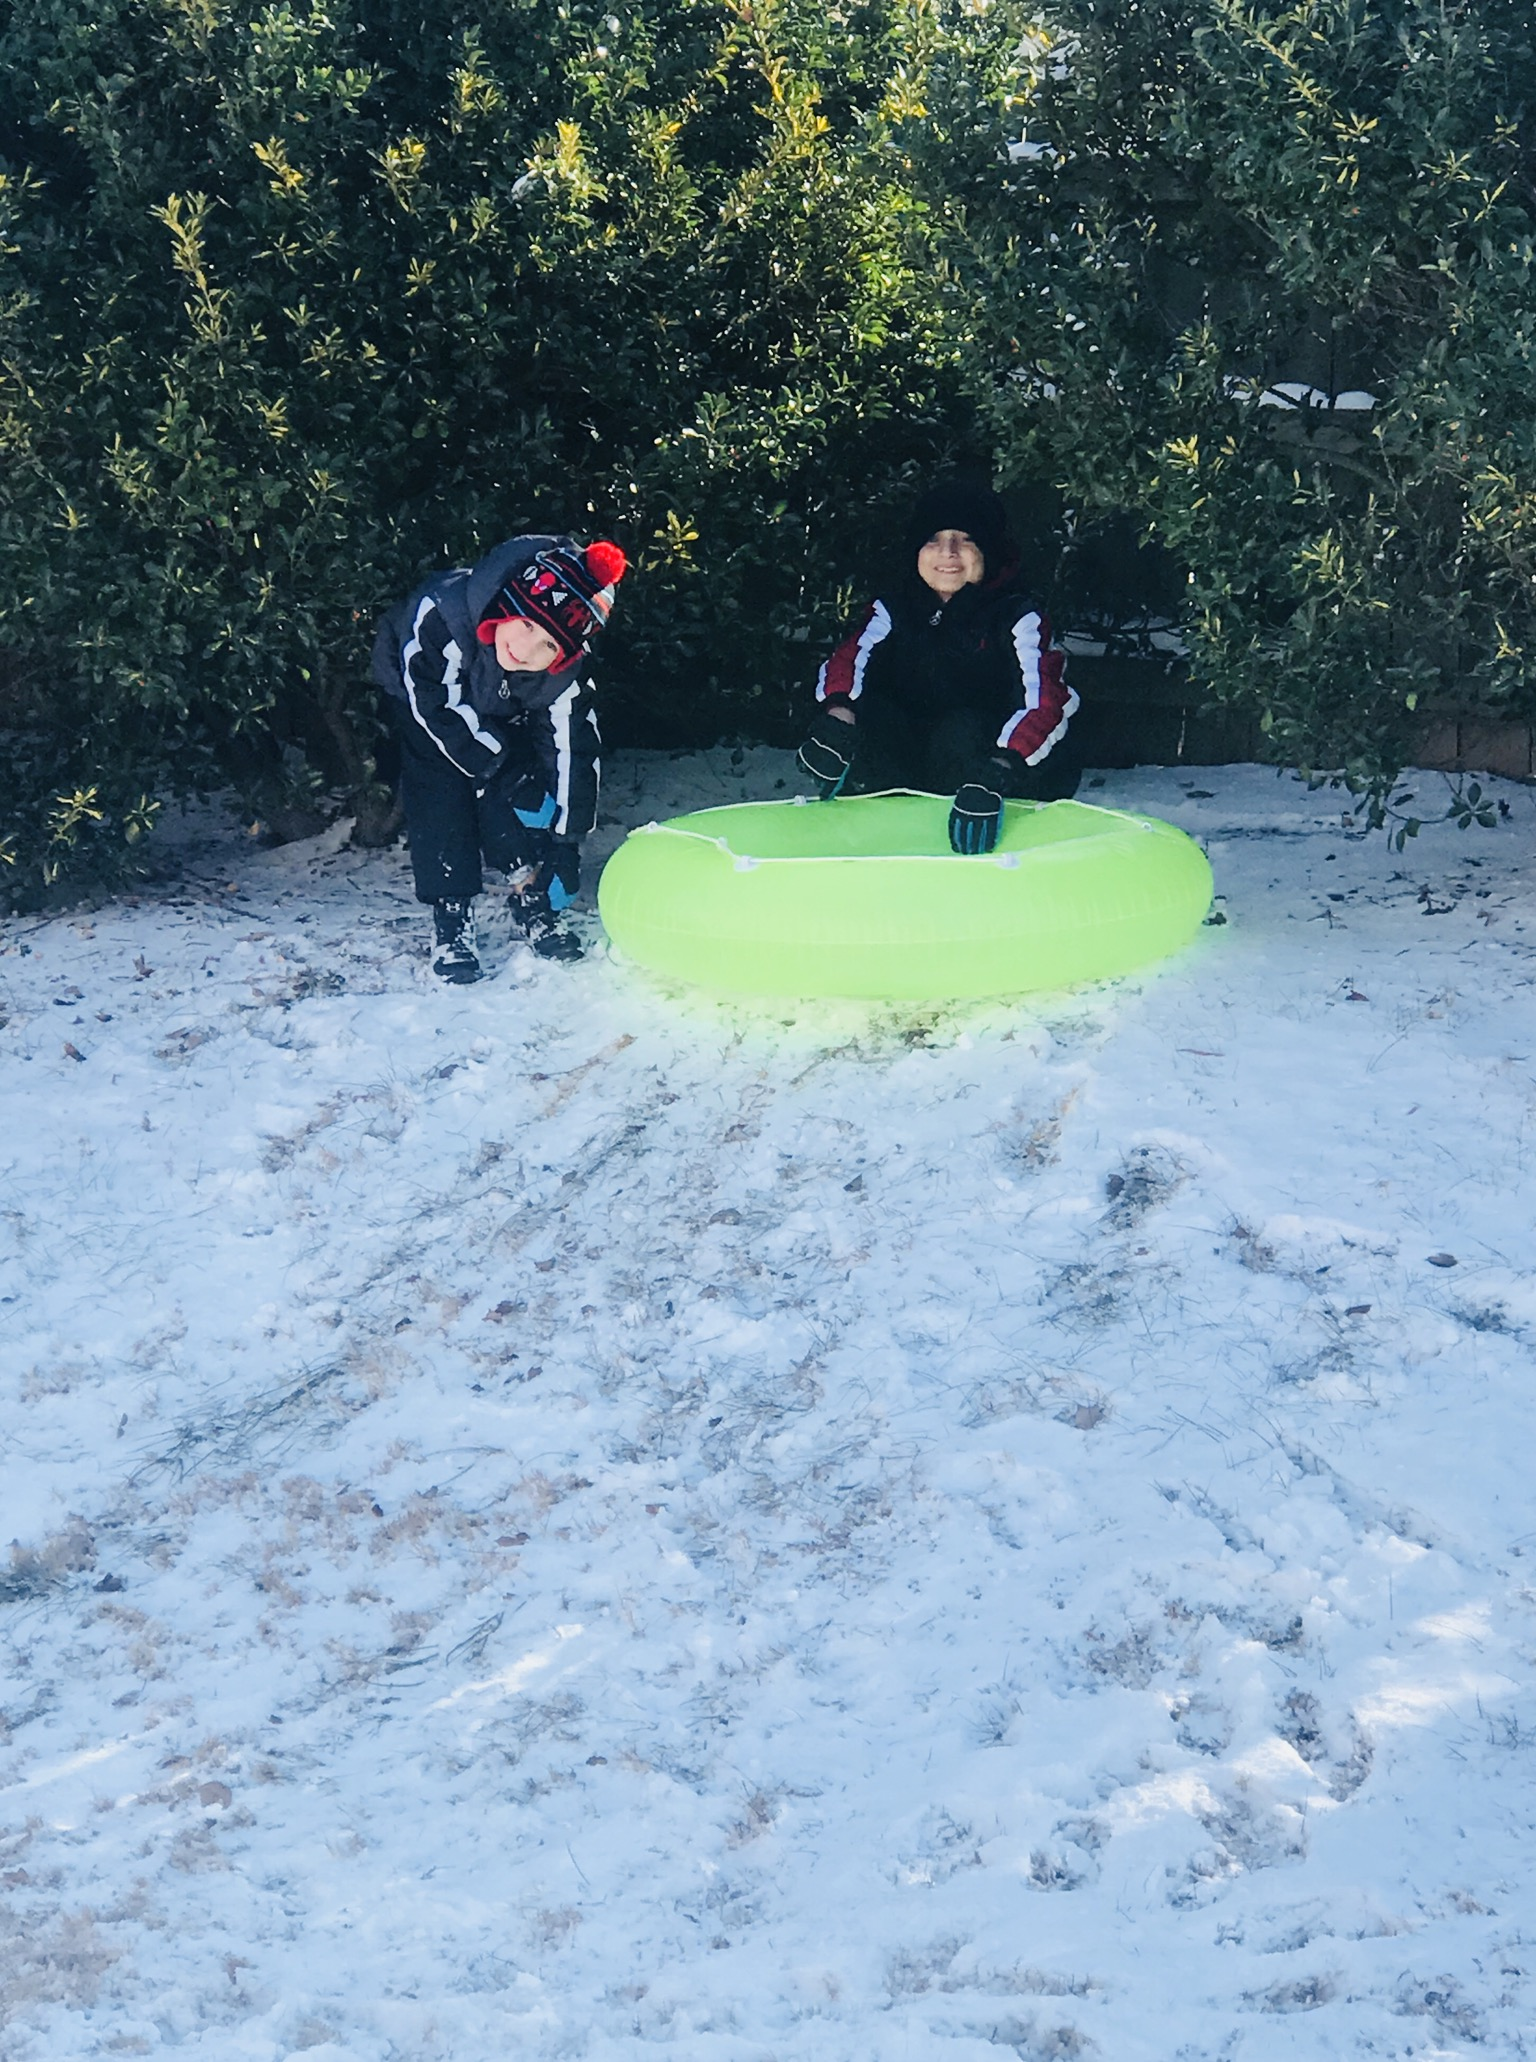 "<div class=""meta image-caption""><div class=""origin-logo origin-image none""><span>none</span></div><span class=""caption-text"">Connor and Caden brothers from Clayton enjoying a snow day! (Heidi Camposano - ABC11 Eyewitness)</span></div>"